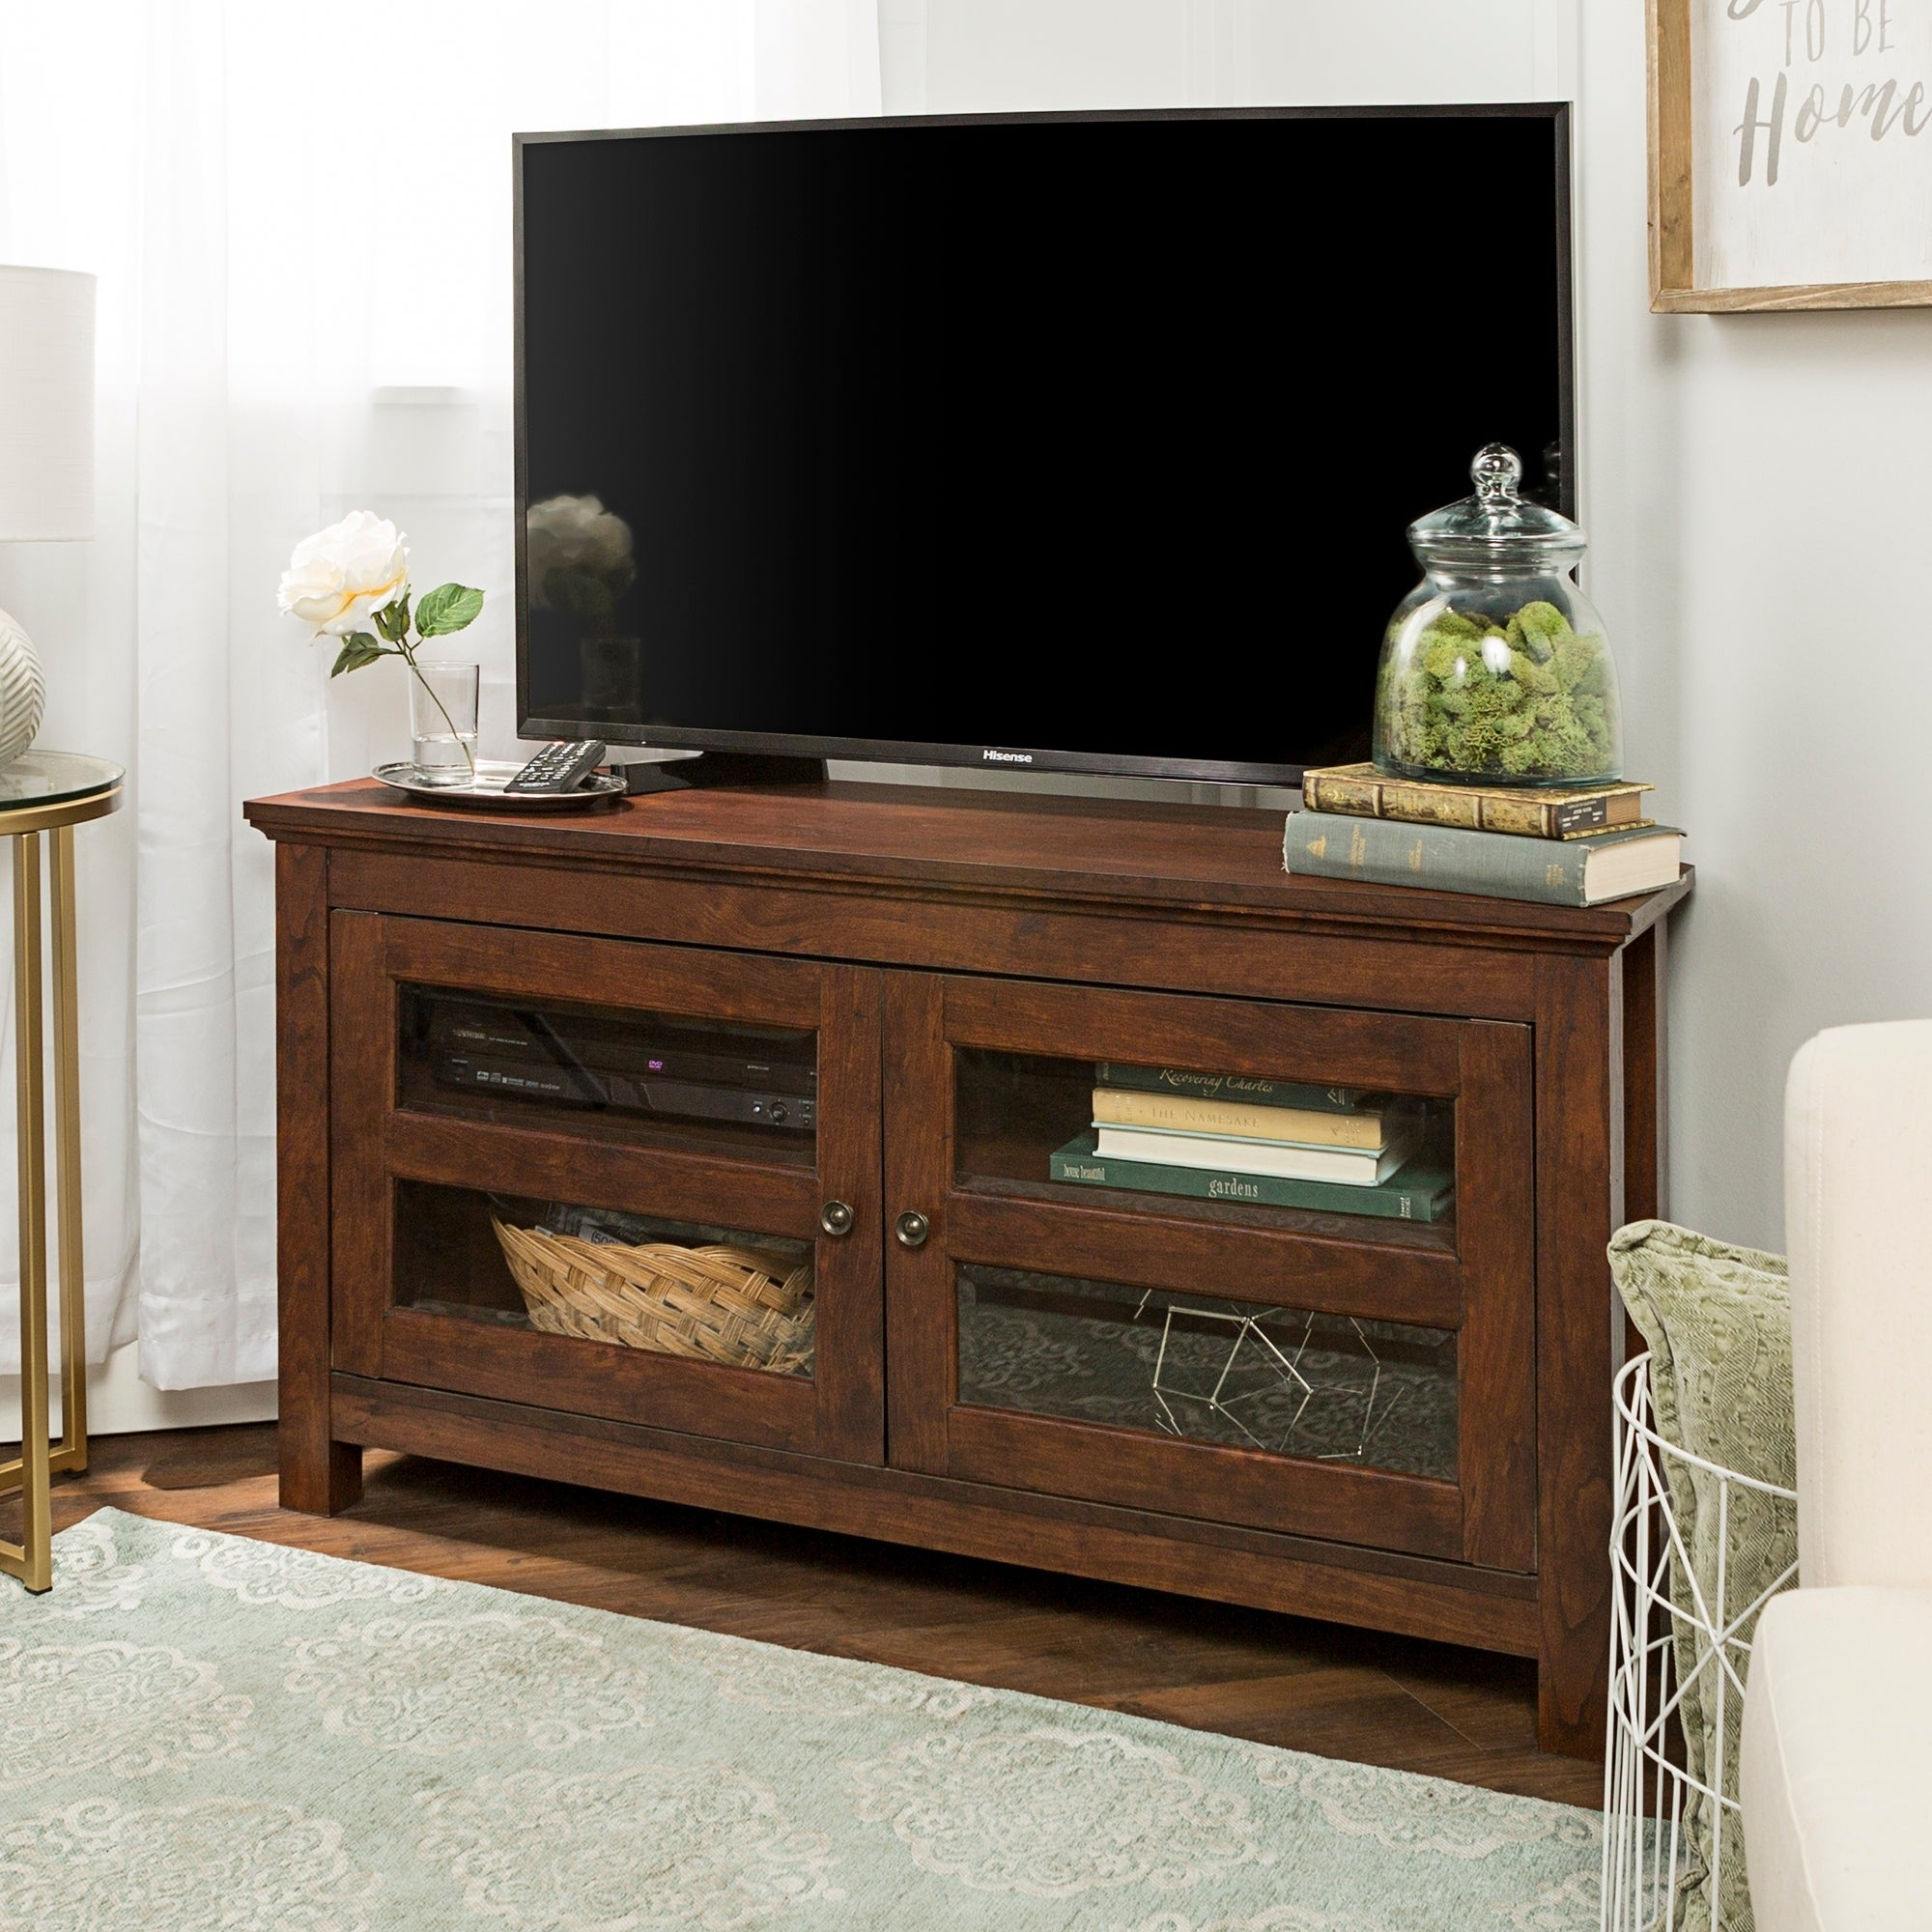 shop clay alder home sturgeon 44 inch brown wood corner tv stand free shipping today overstockcom 20602751 - Wood Corner Tv Stand